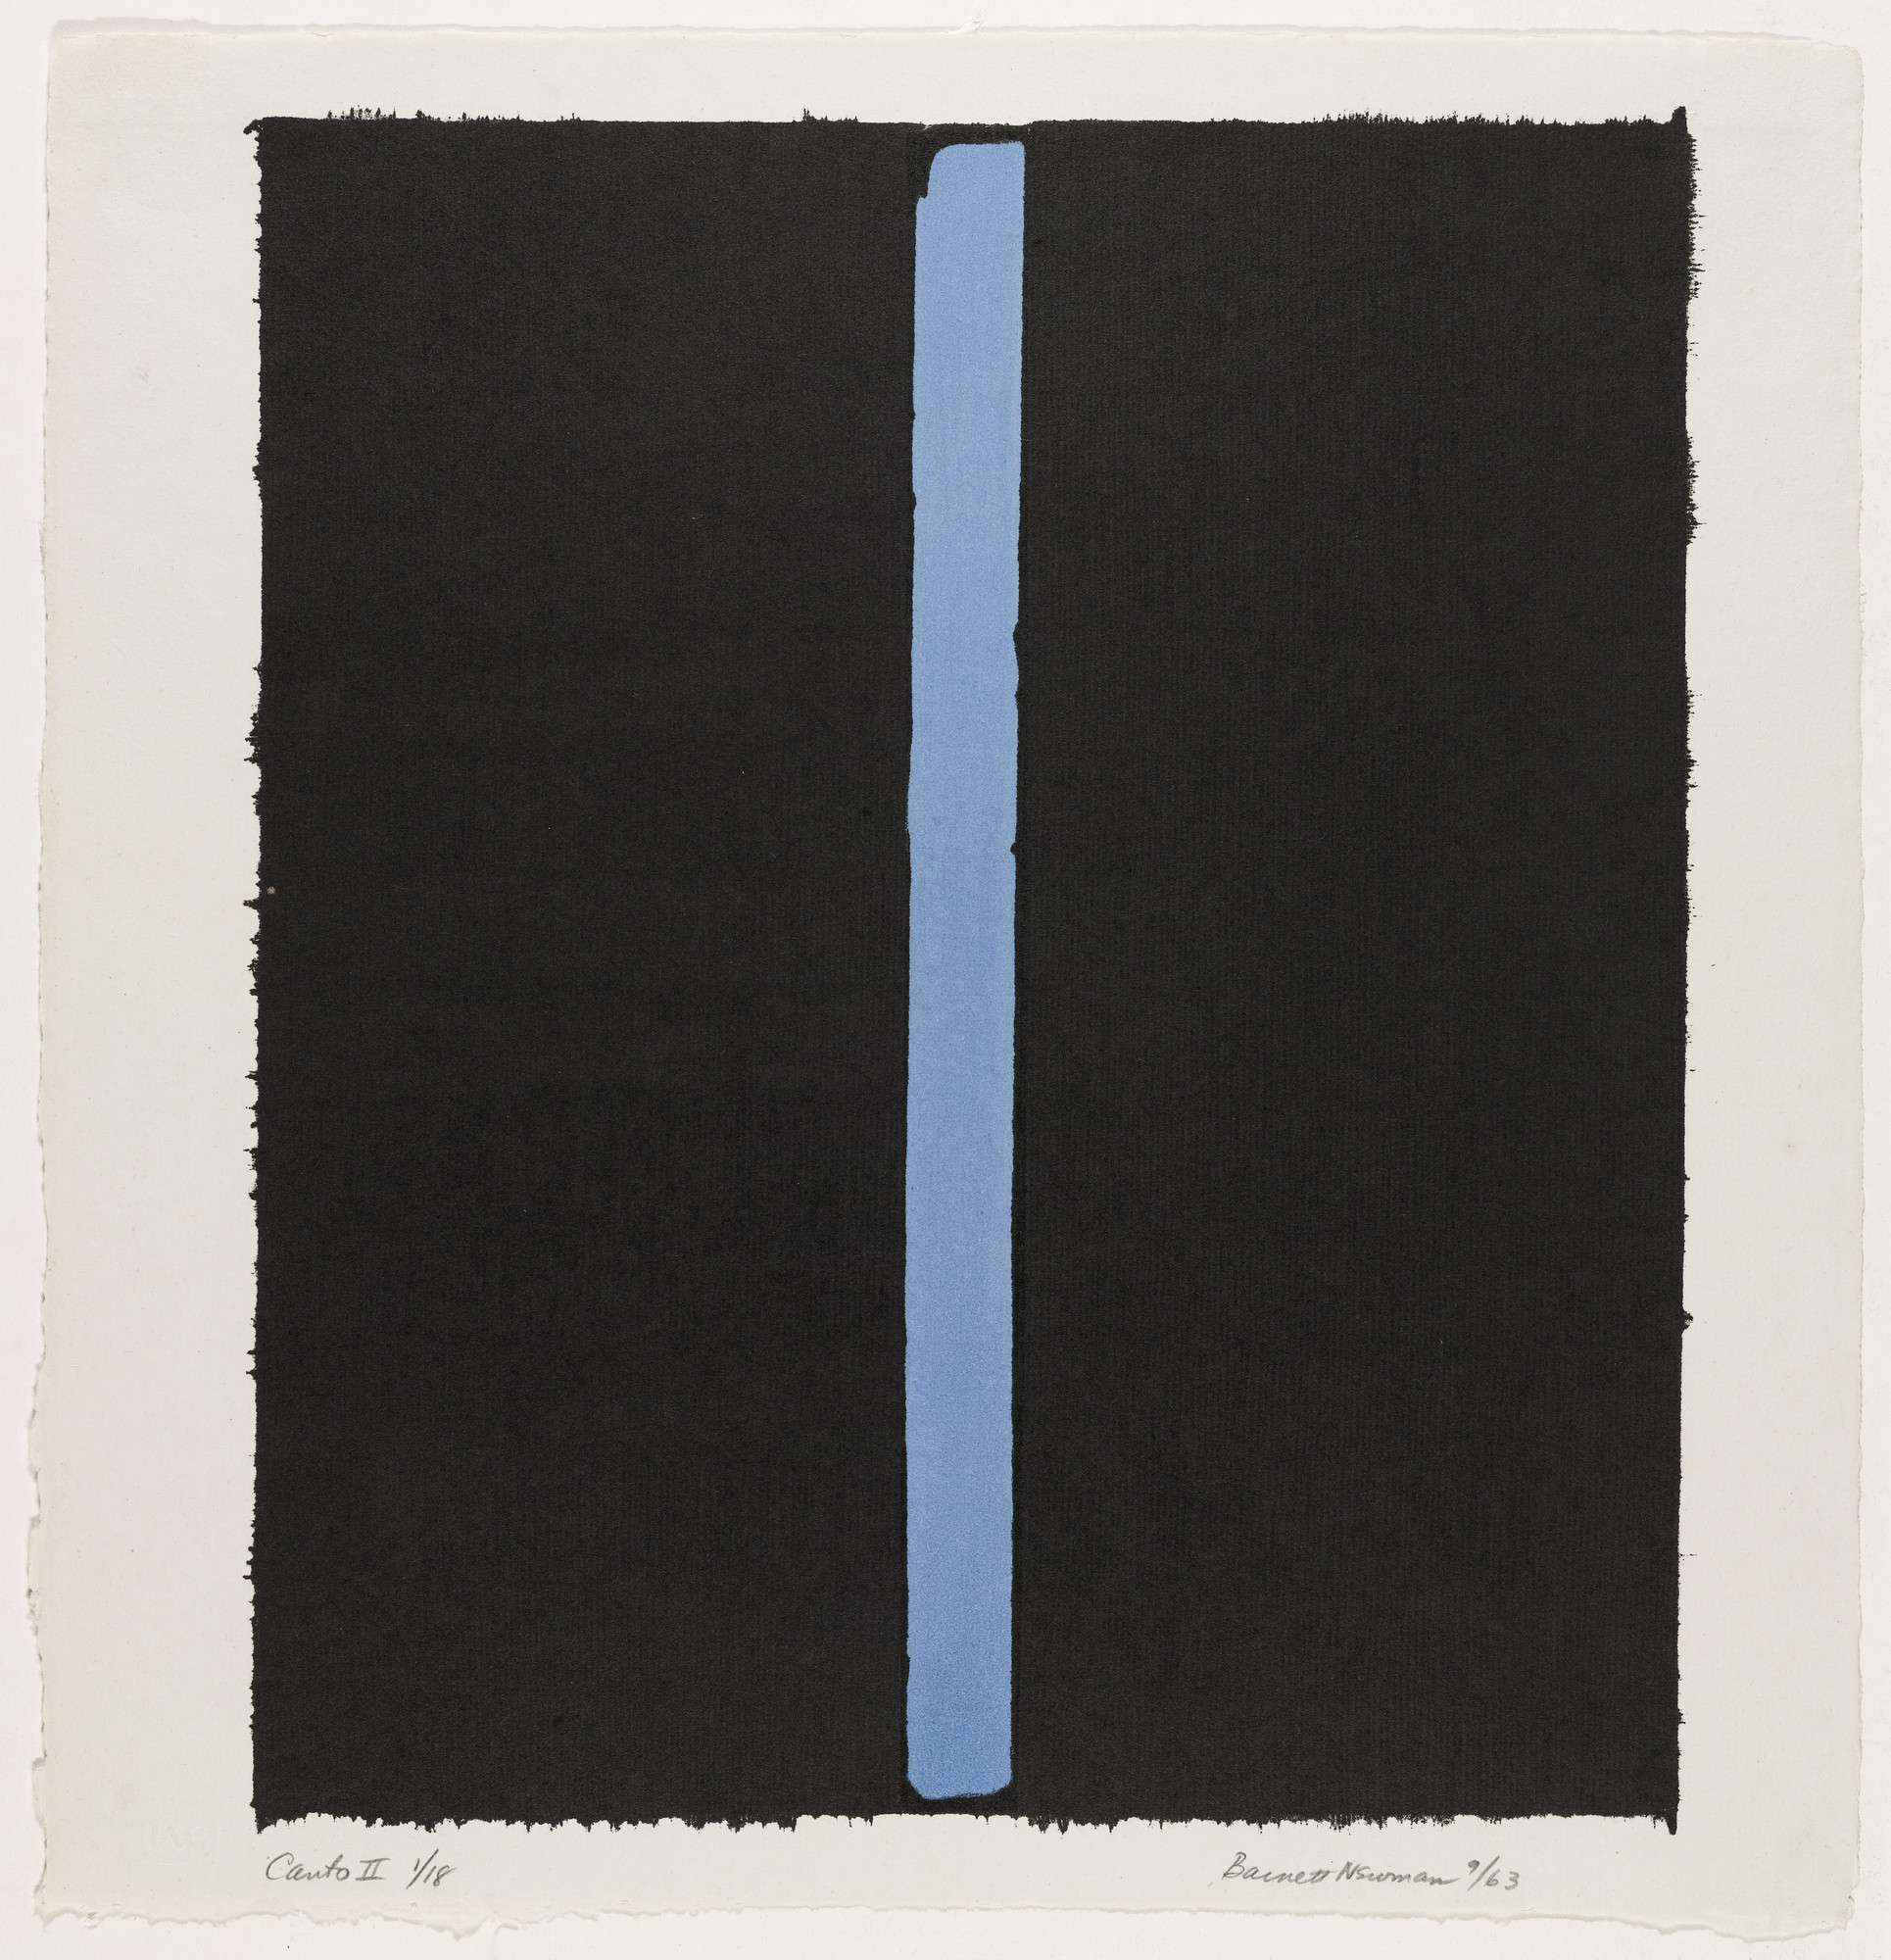 Barnett Newman. Canto II from 18 Cantos. 1964